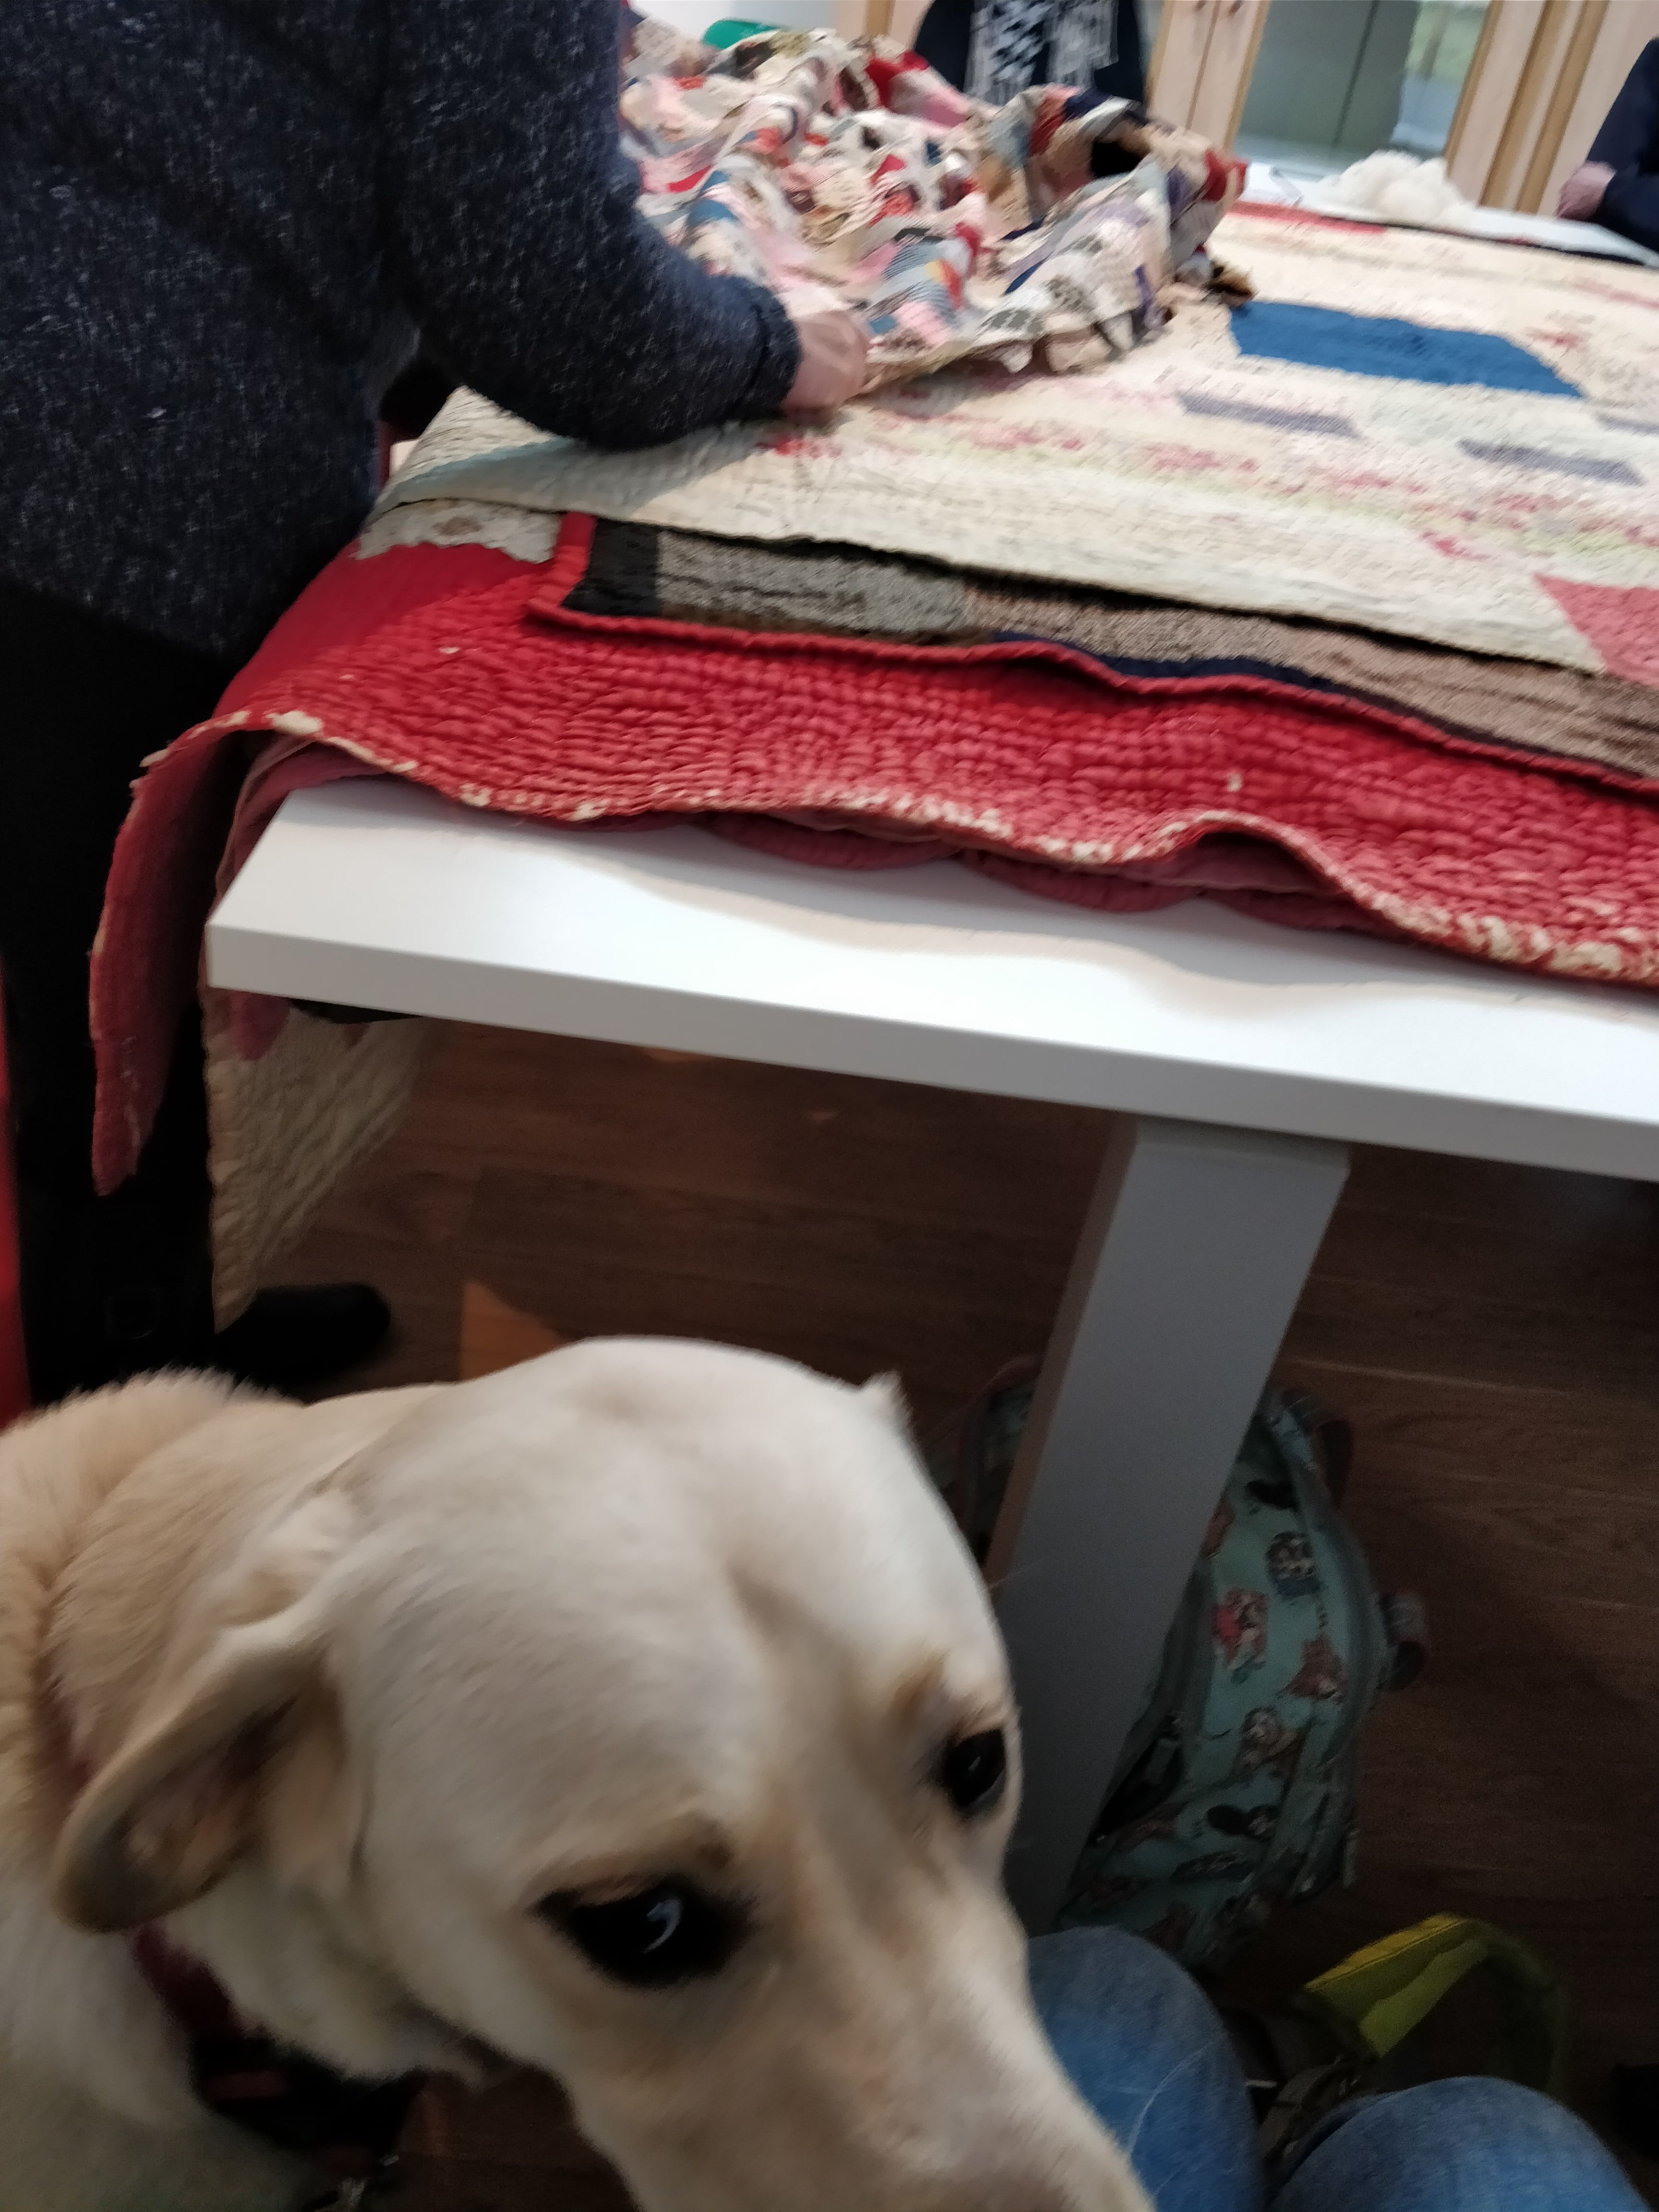 Guide Dog Uri with quilts from the handling collection in the background